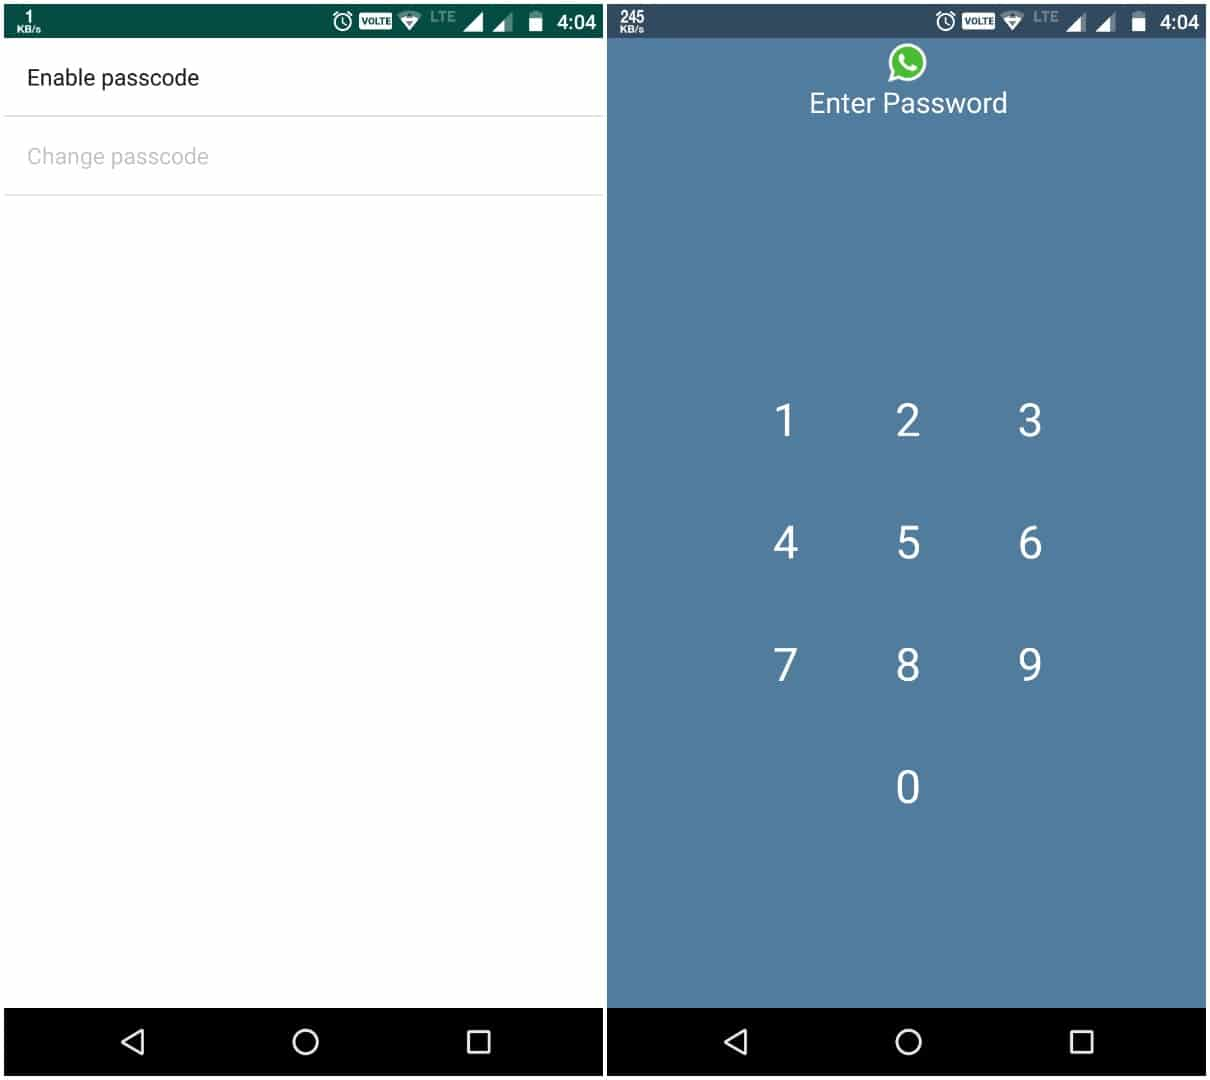 Download GBWhatsApp APK 7 00+ Latest Version [Anti-Ban] (OFFICIAL) 2019